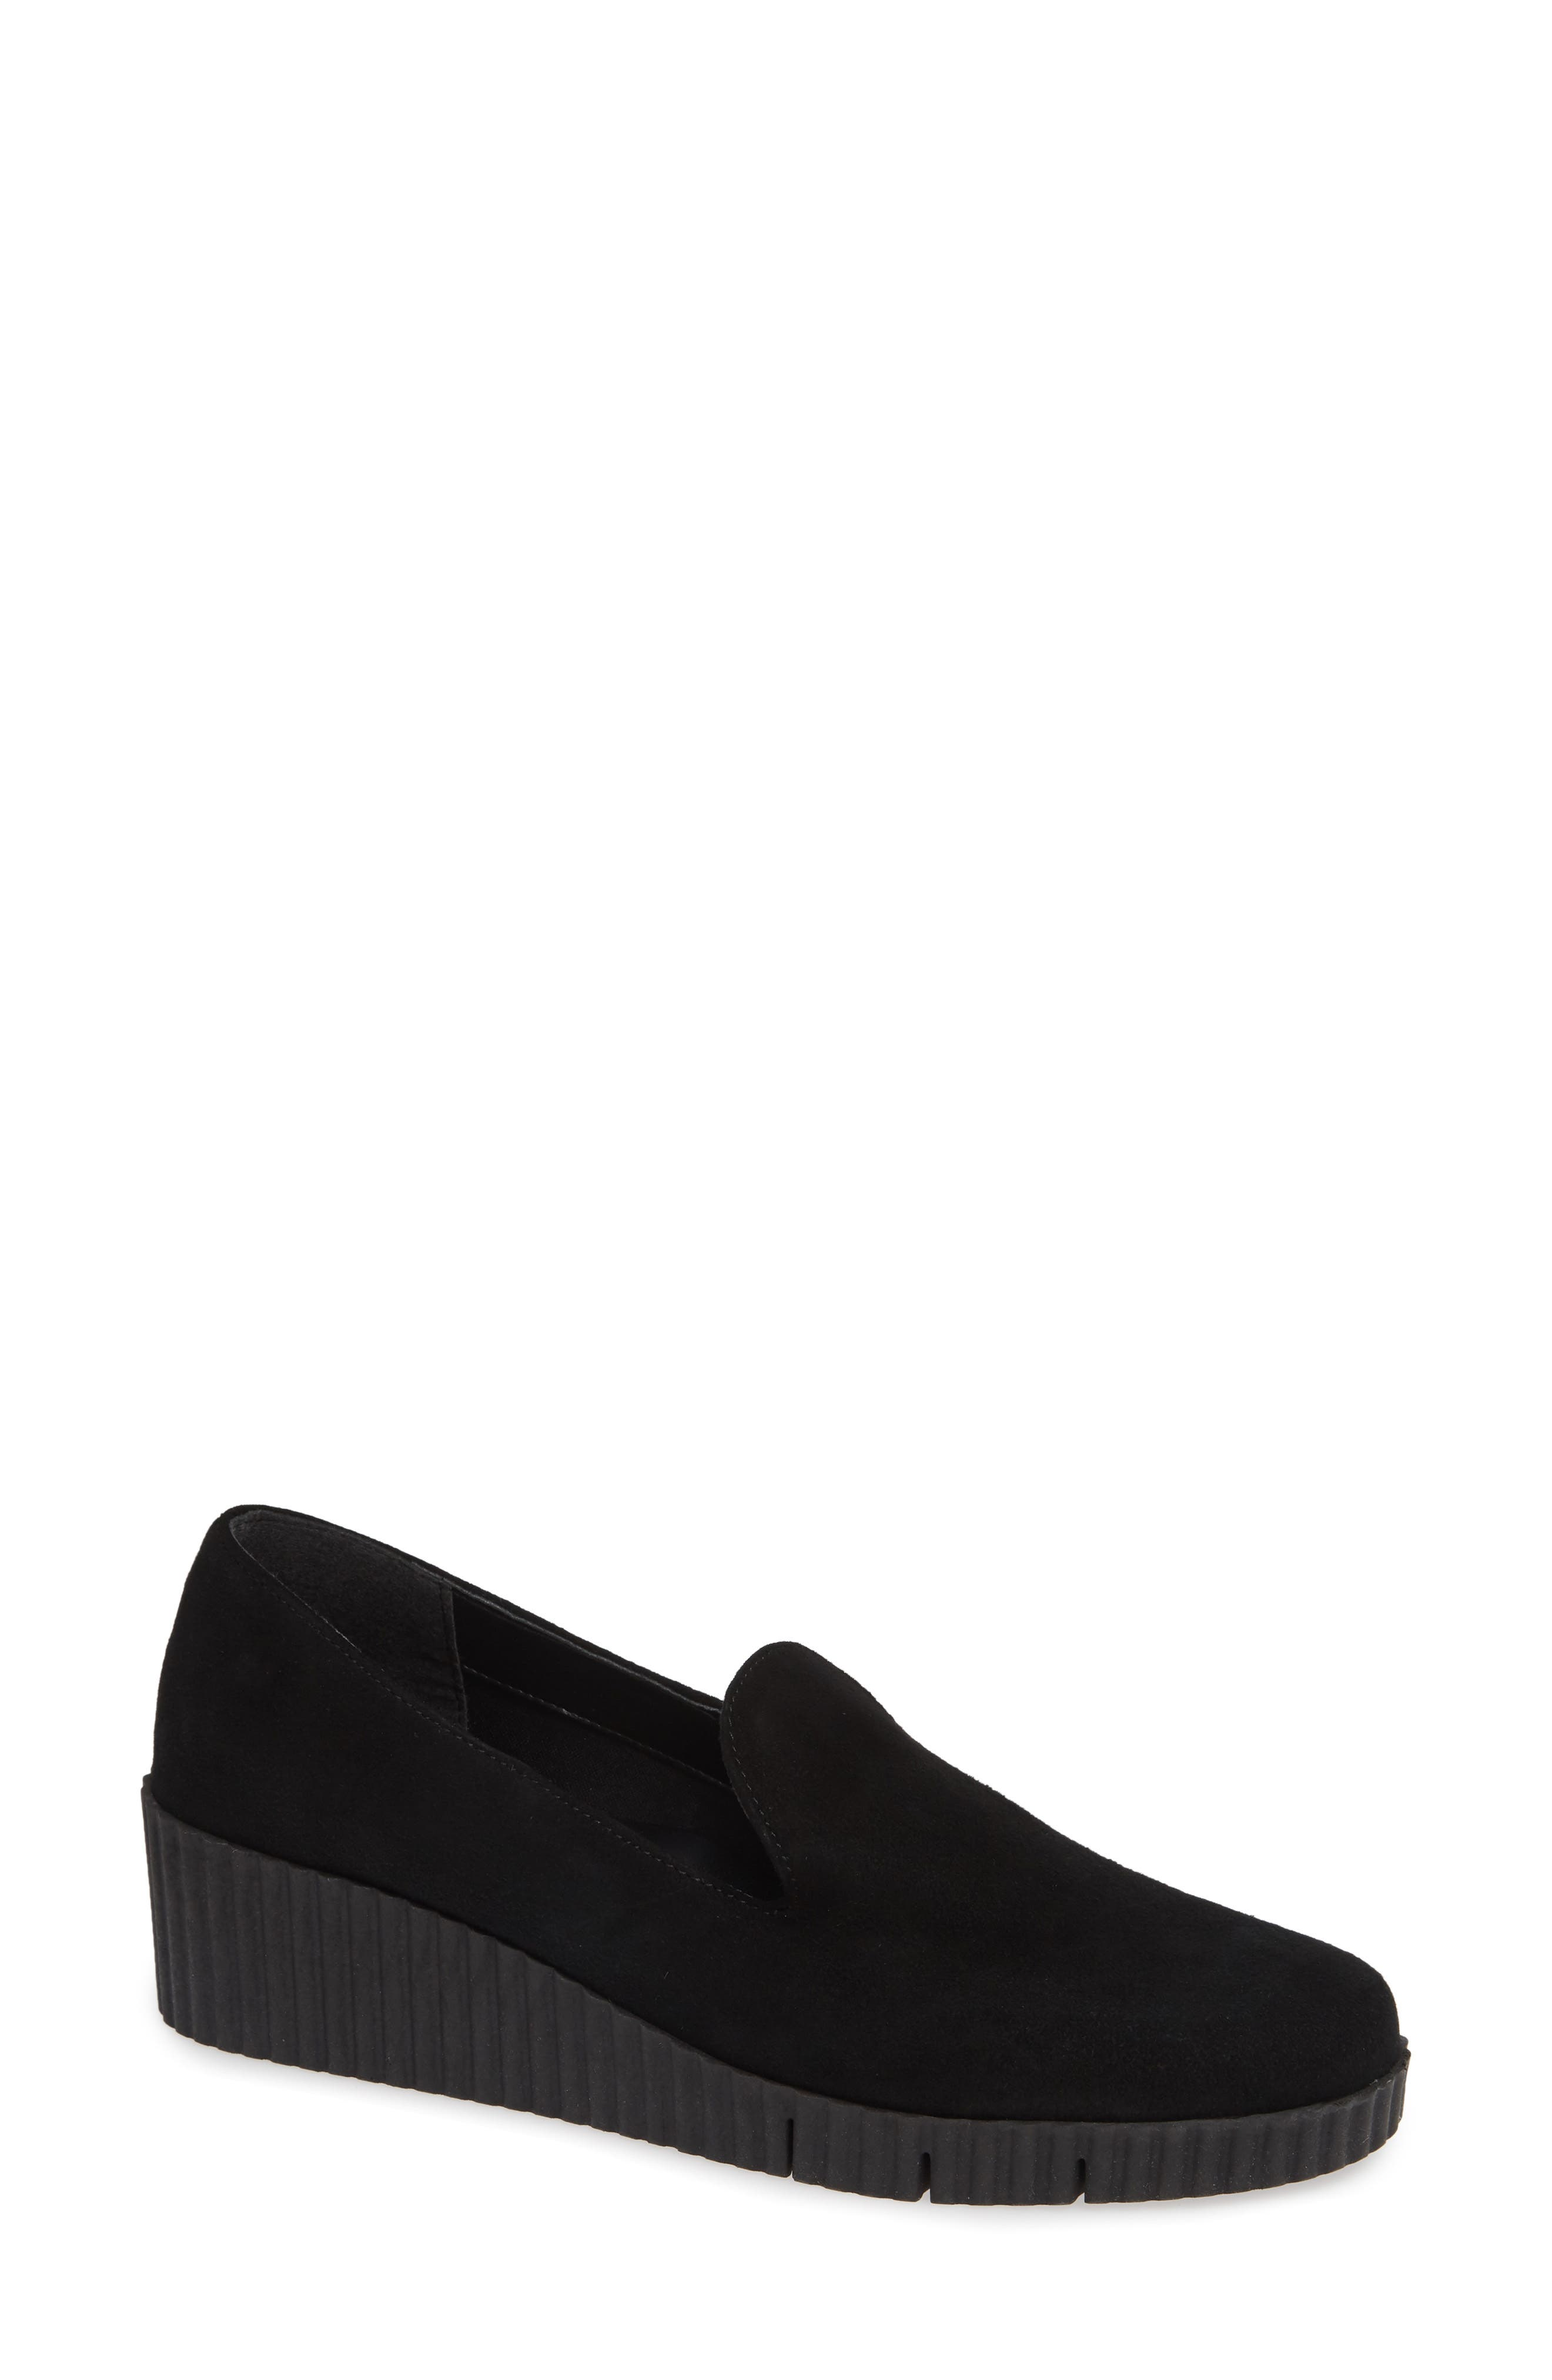 Fast Times Loafer,                             Main thumbnail 1, color,                             BLACK SUEDE